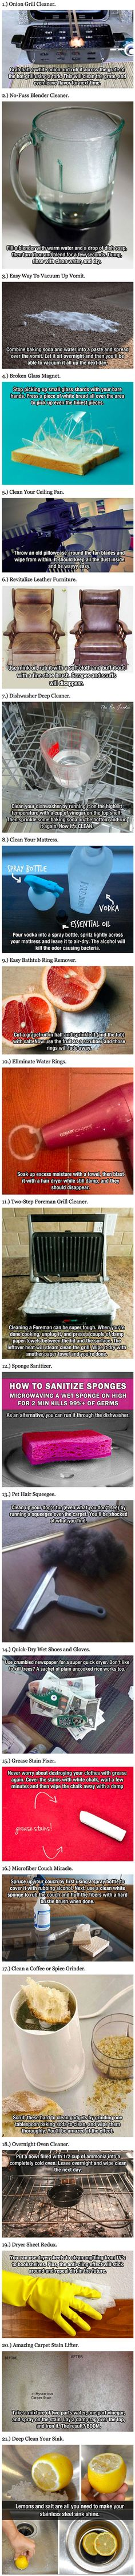 Here are some simple cleaning hacks you probably never knew about.